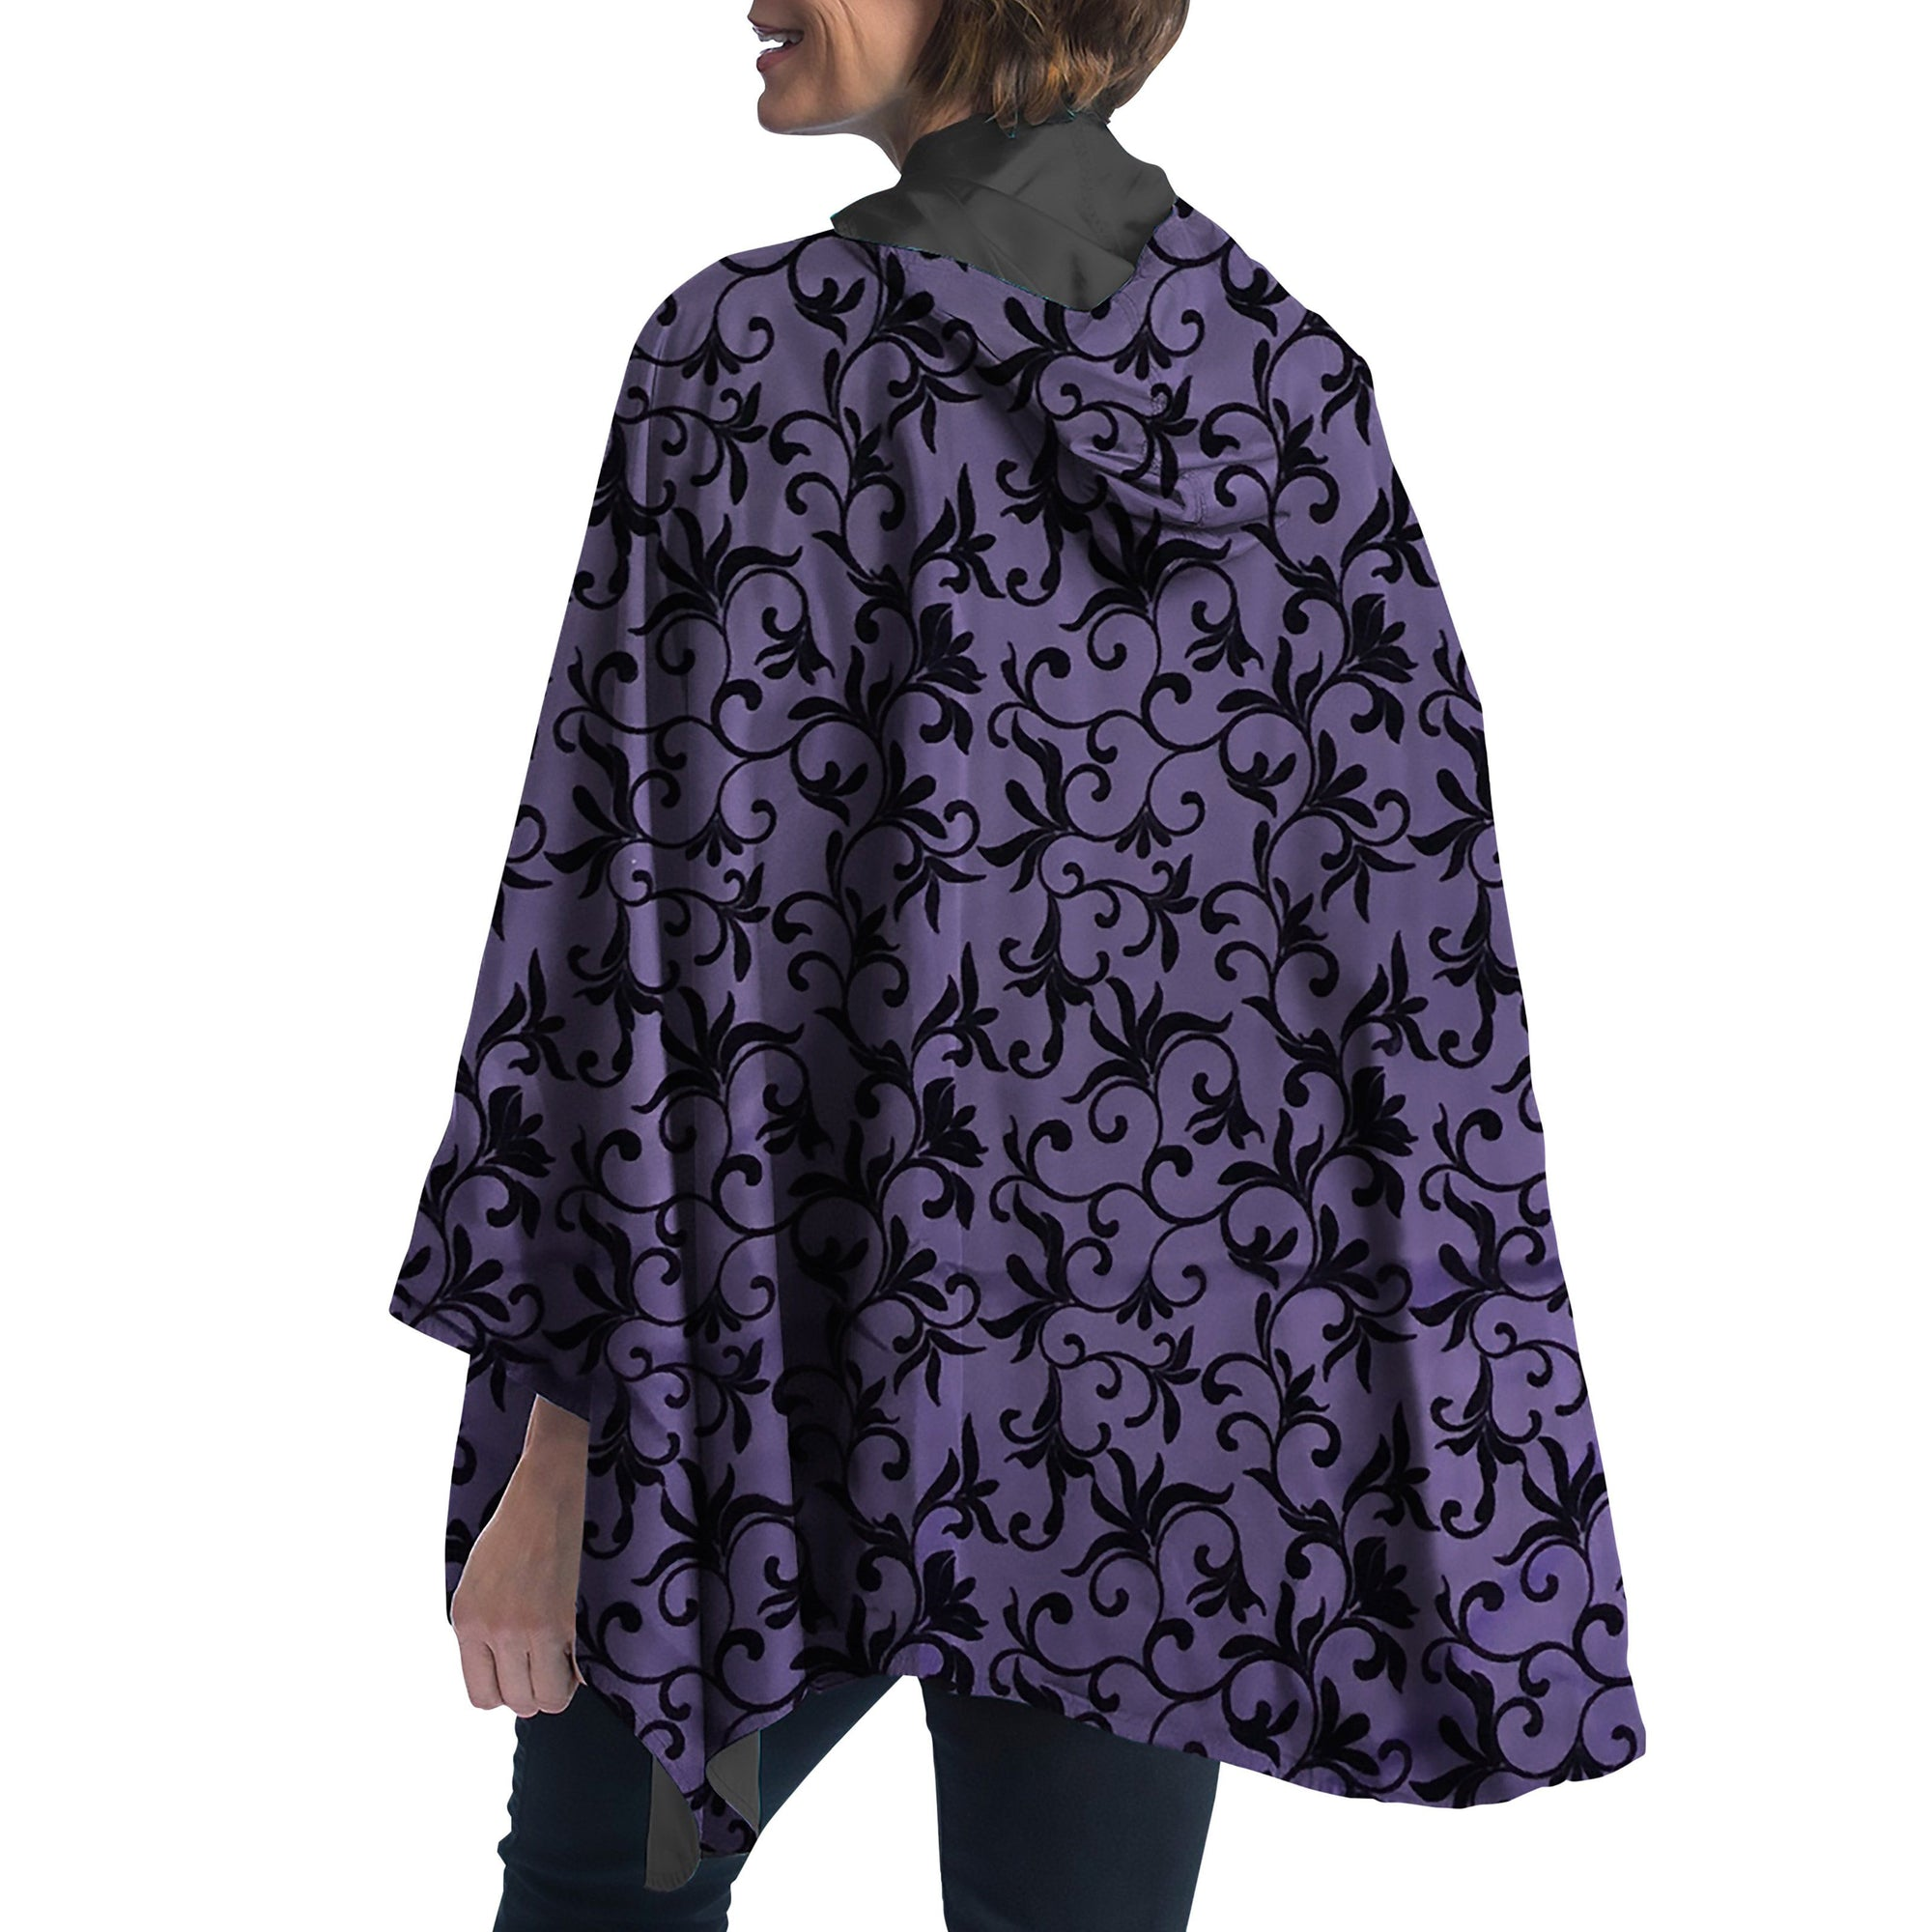 Women wearing a Plum with Velvet Swirls RainCaper travel cape